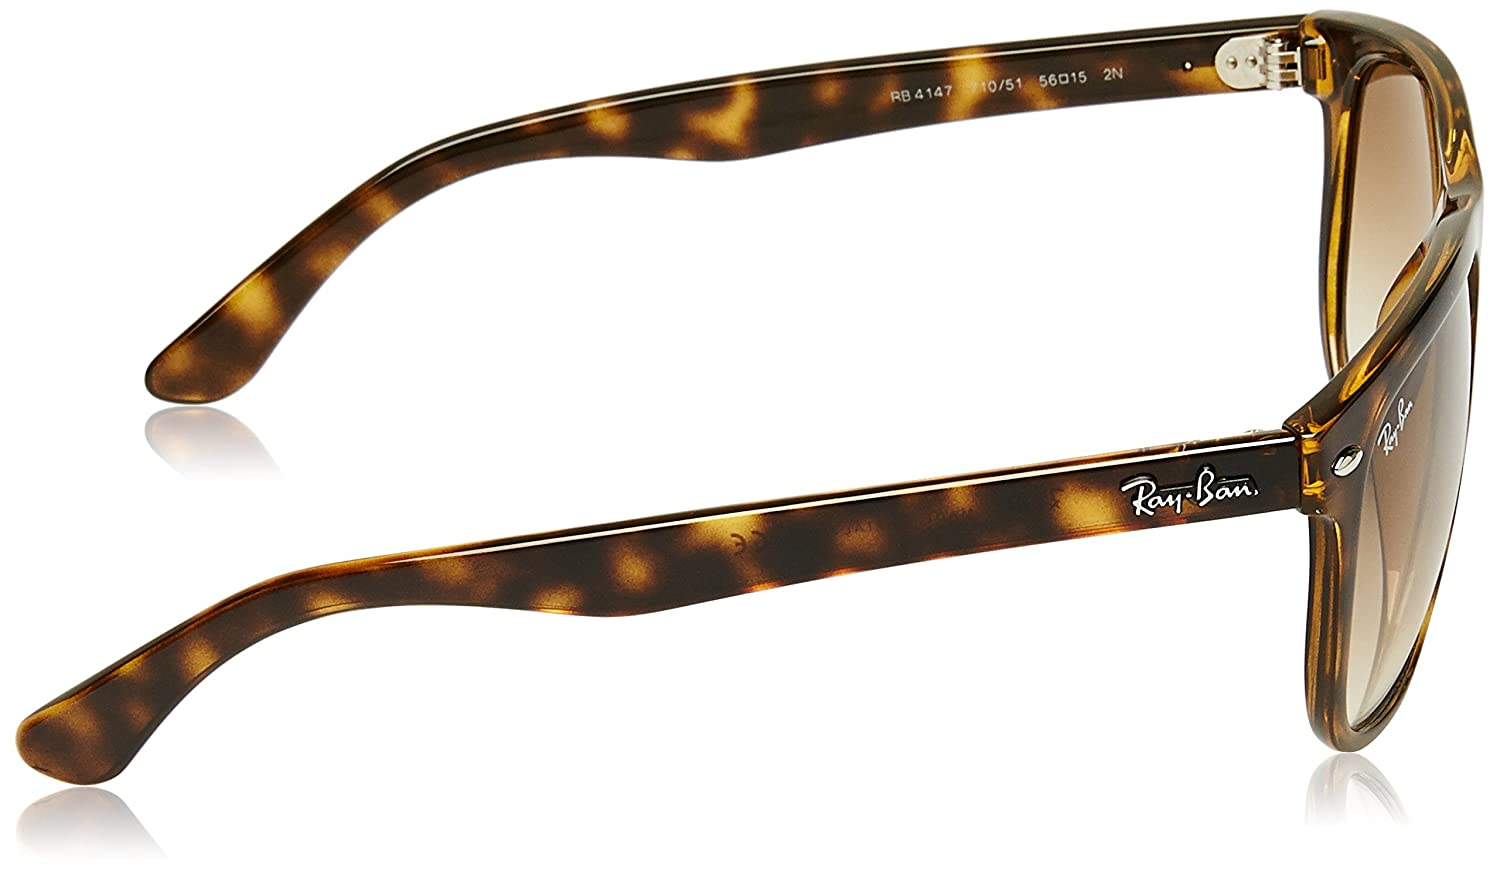 ea17884a94 Amazon.com  Ray-Ban RB4147 - Light Havana Frame Crystal Brown Gradient  Lenses 56mm Non-Polarized  Ray-Ban  Clothing